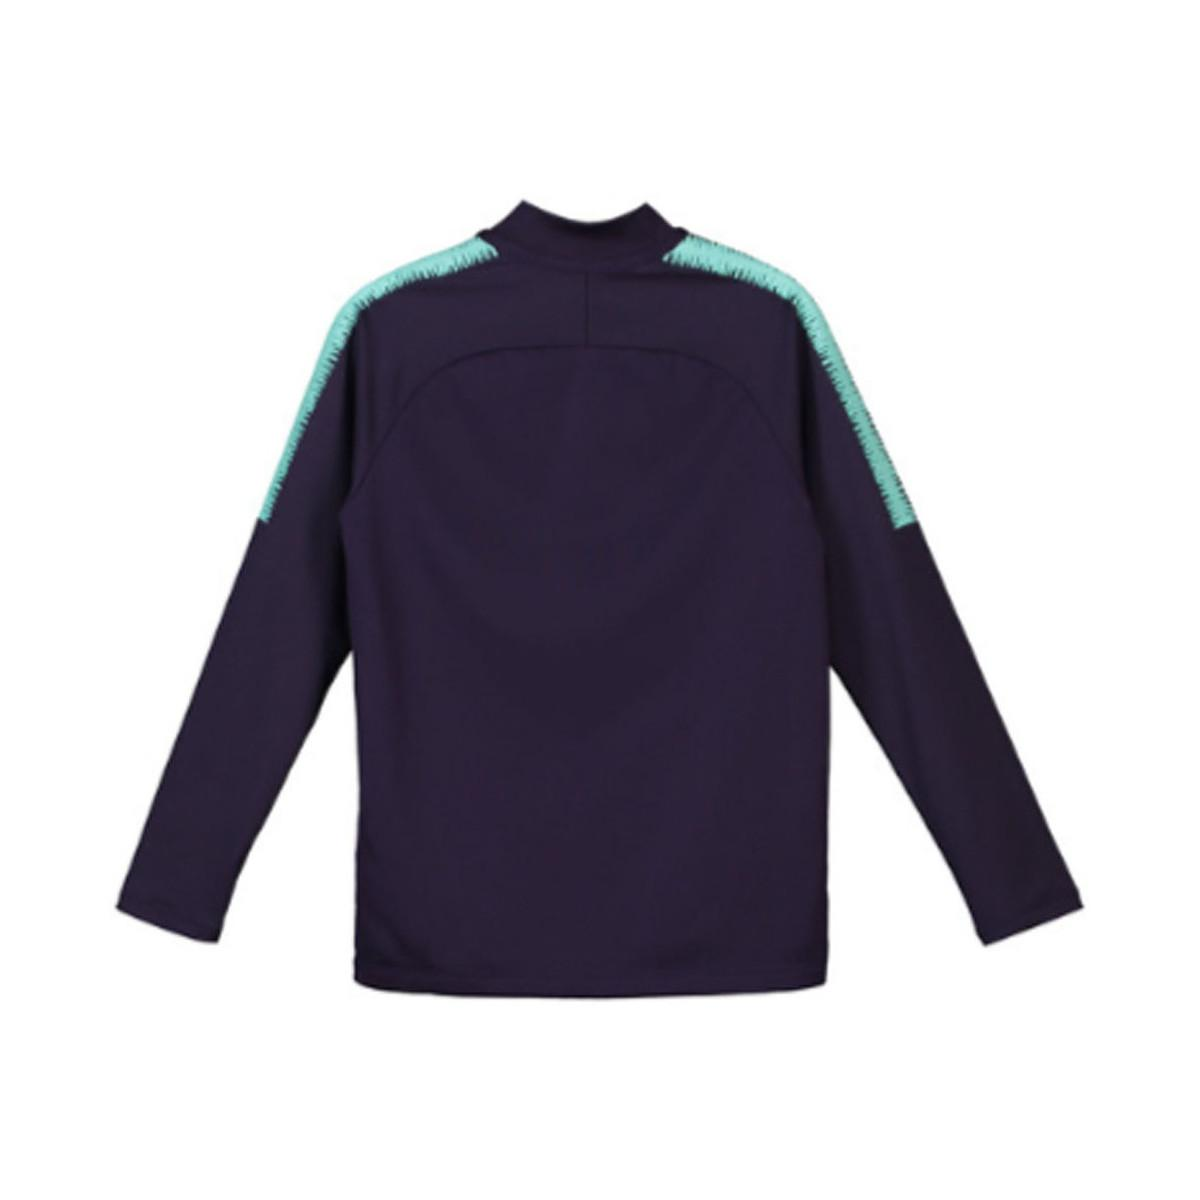 8923420270a Nike 2018-2019 Barcelona Drill Training Top ( Dynasty) - Kids Men s ...